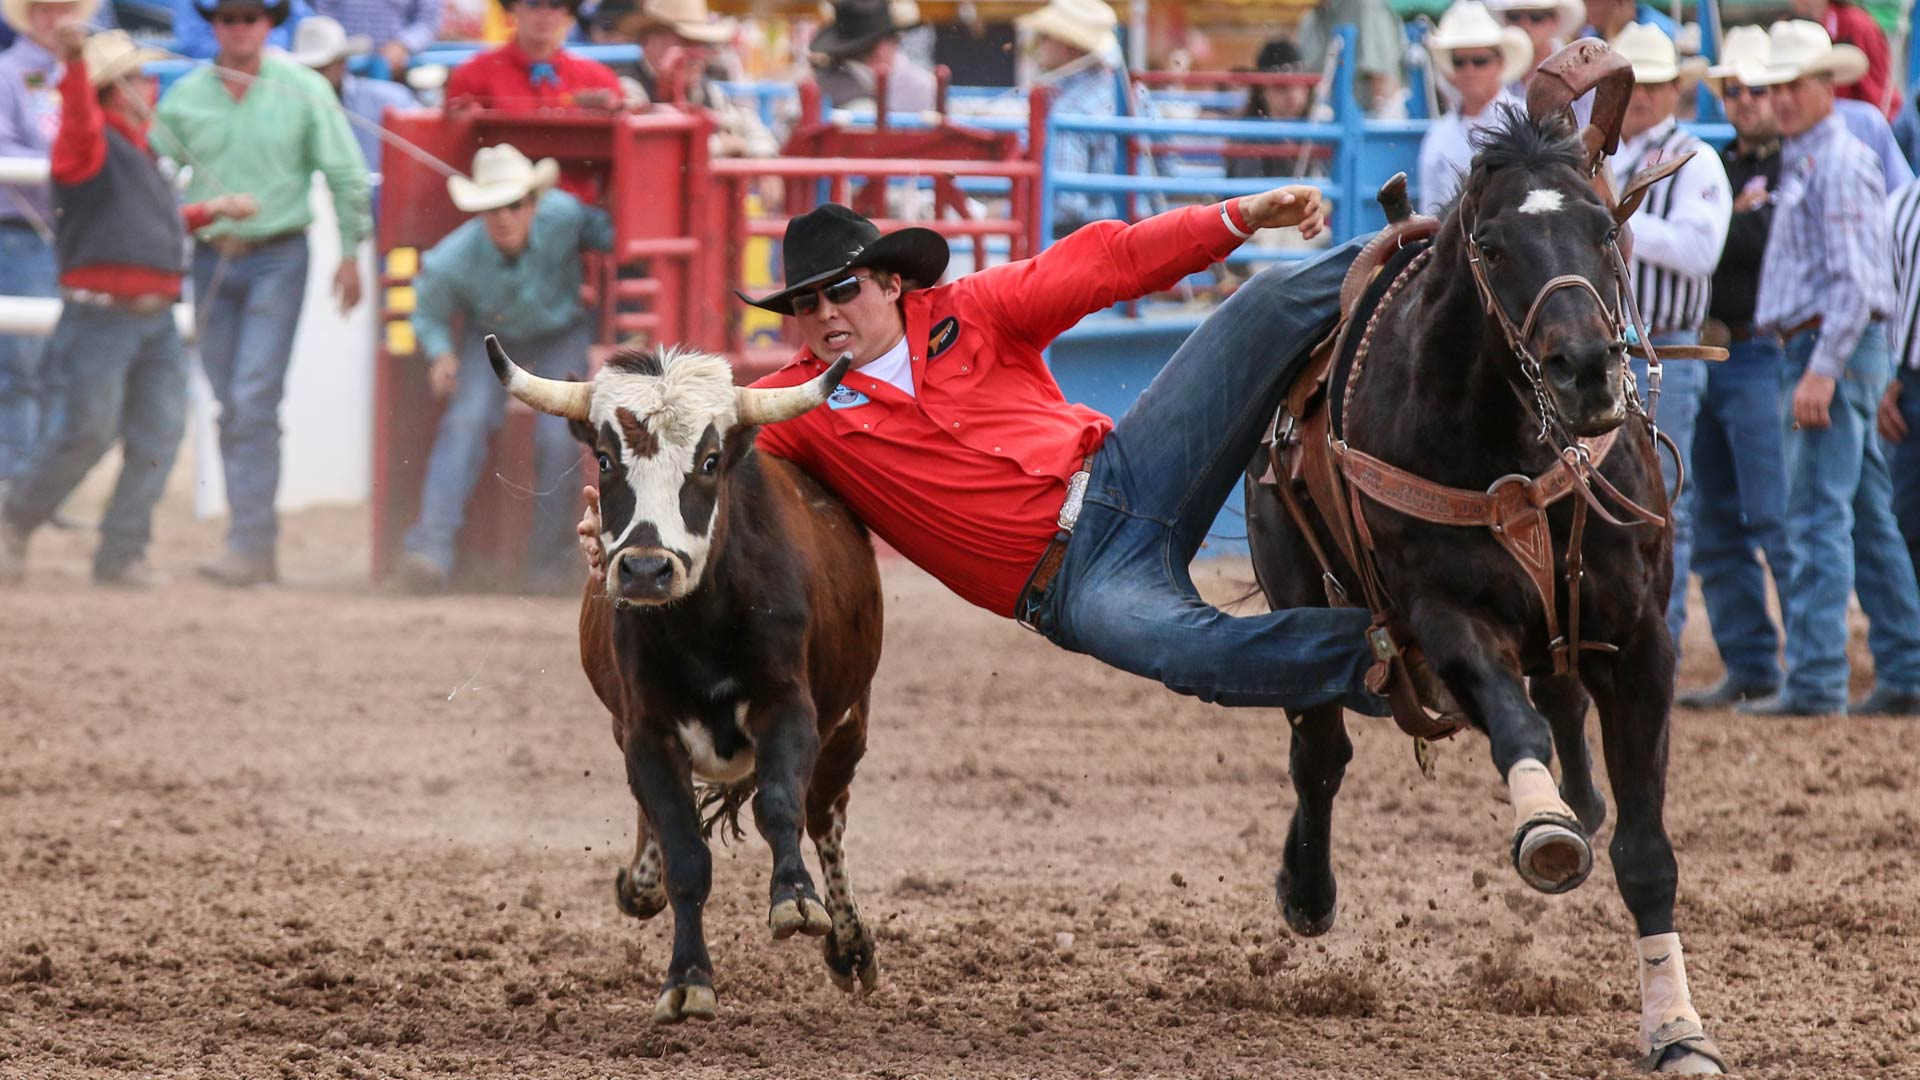 A steer wrestler at the Tucson Rodeo.